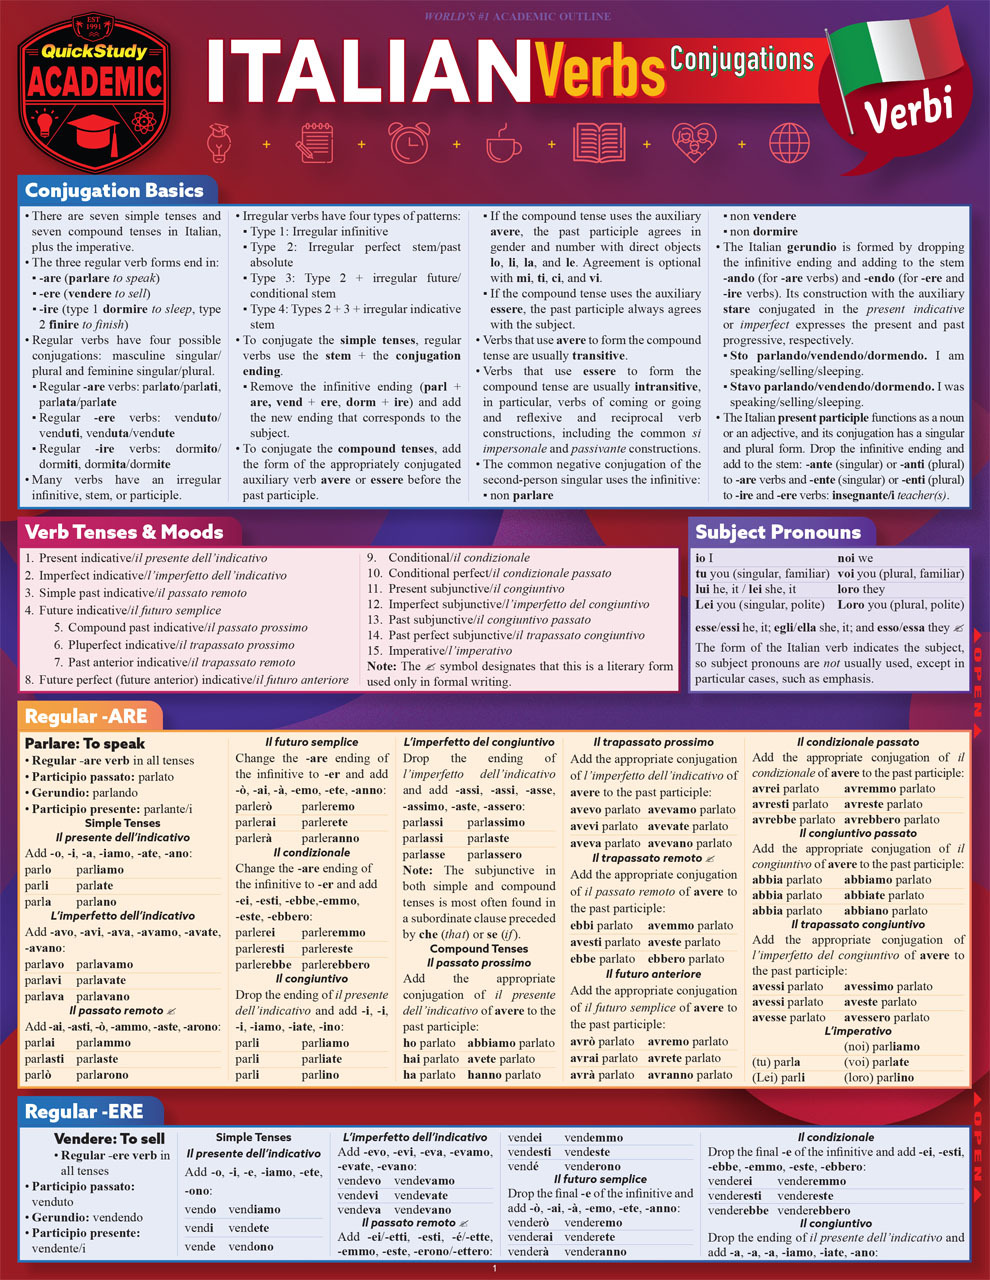 Quick Study QuickStudy Italian Verbs: Conjugations Laminated Study Guide BarCharts Publishing Foreign Language Reference Cover Image